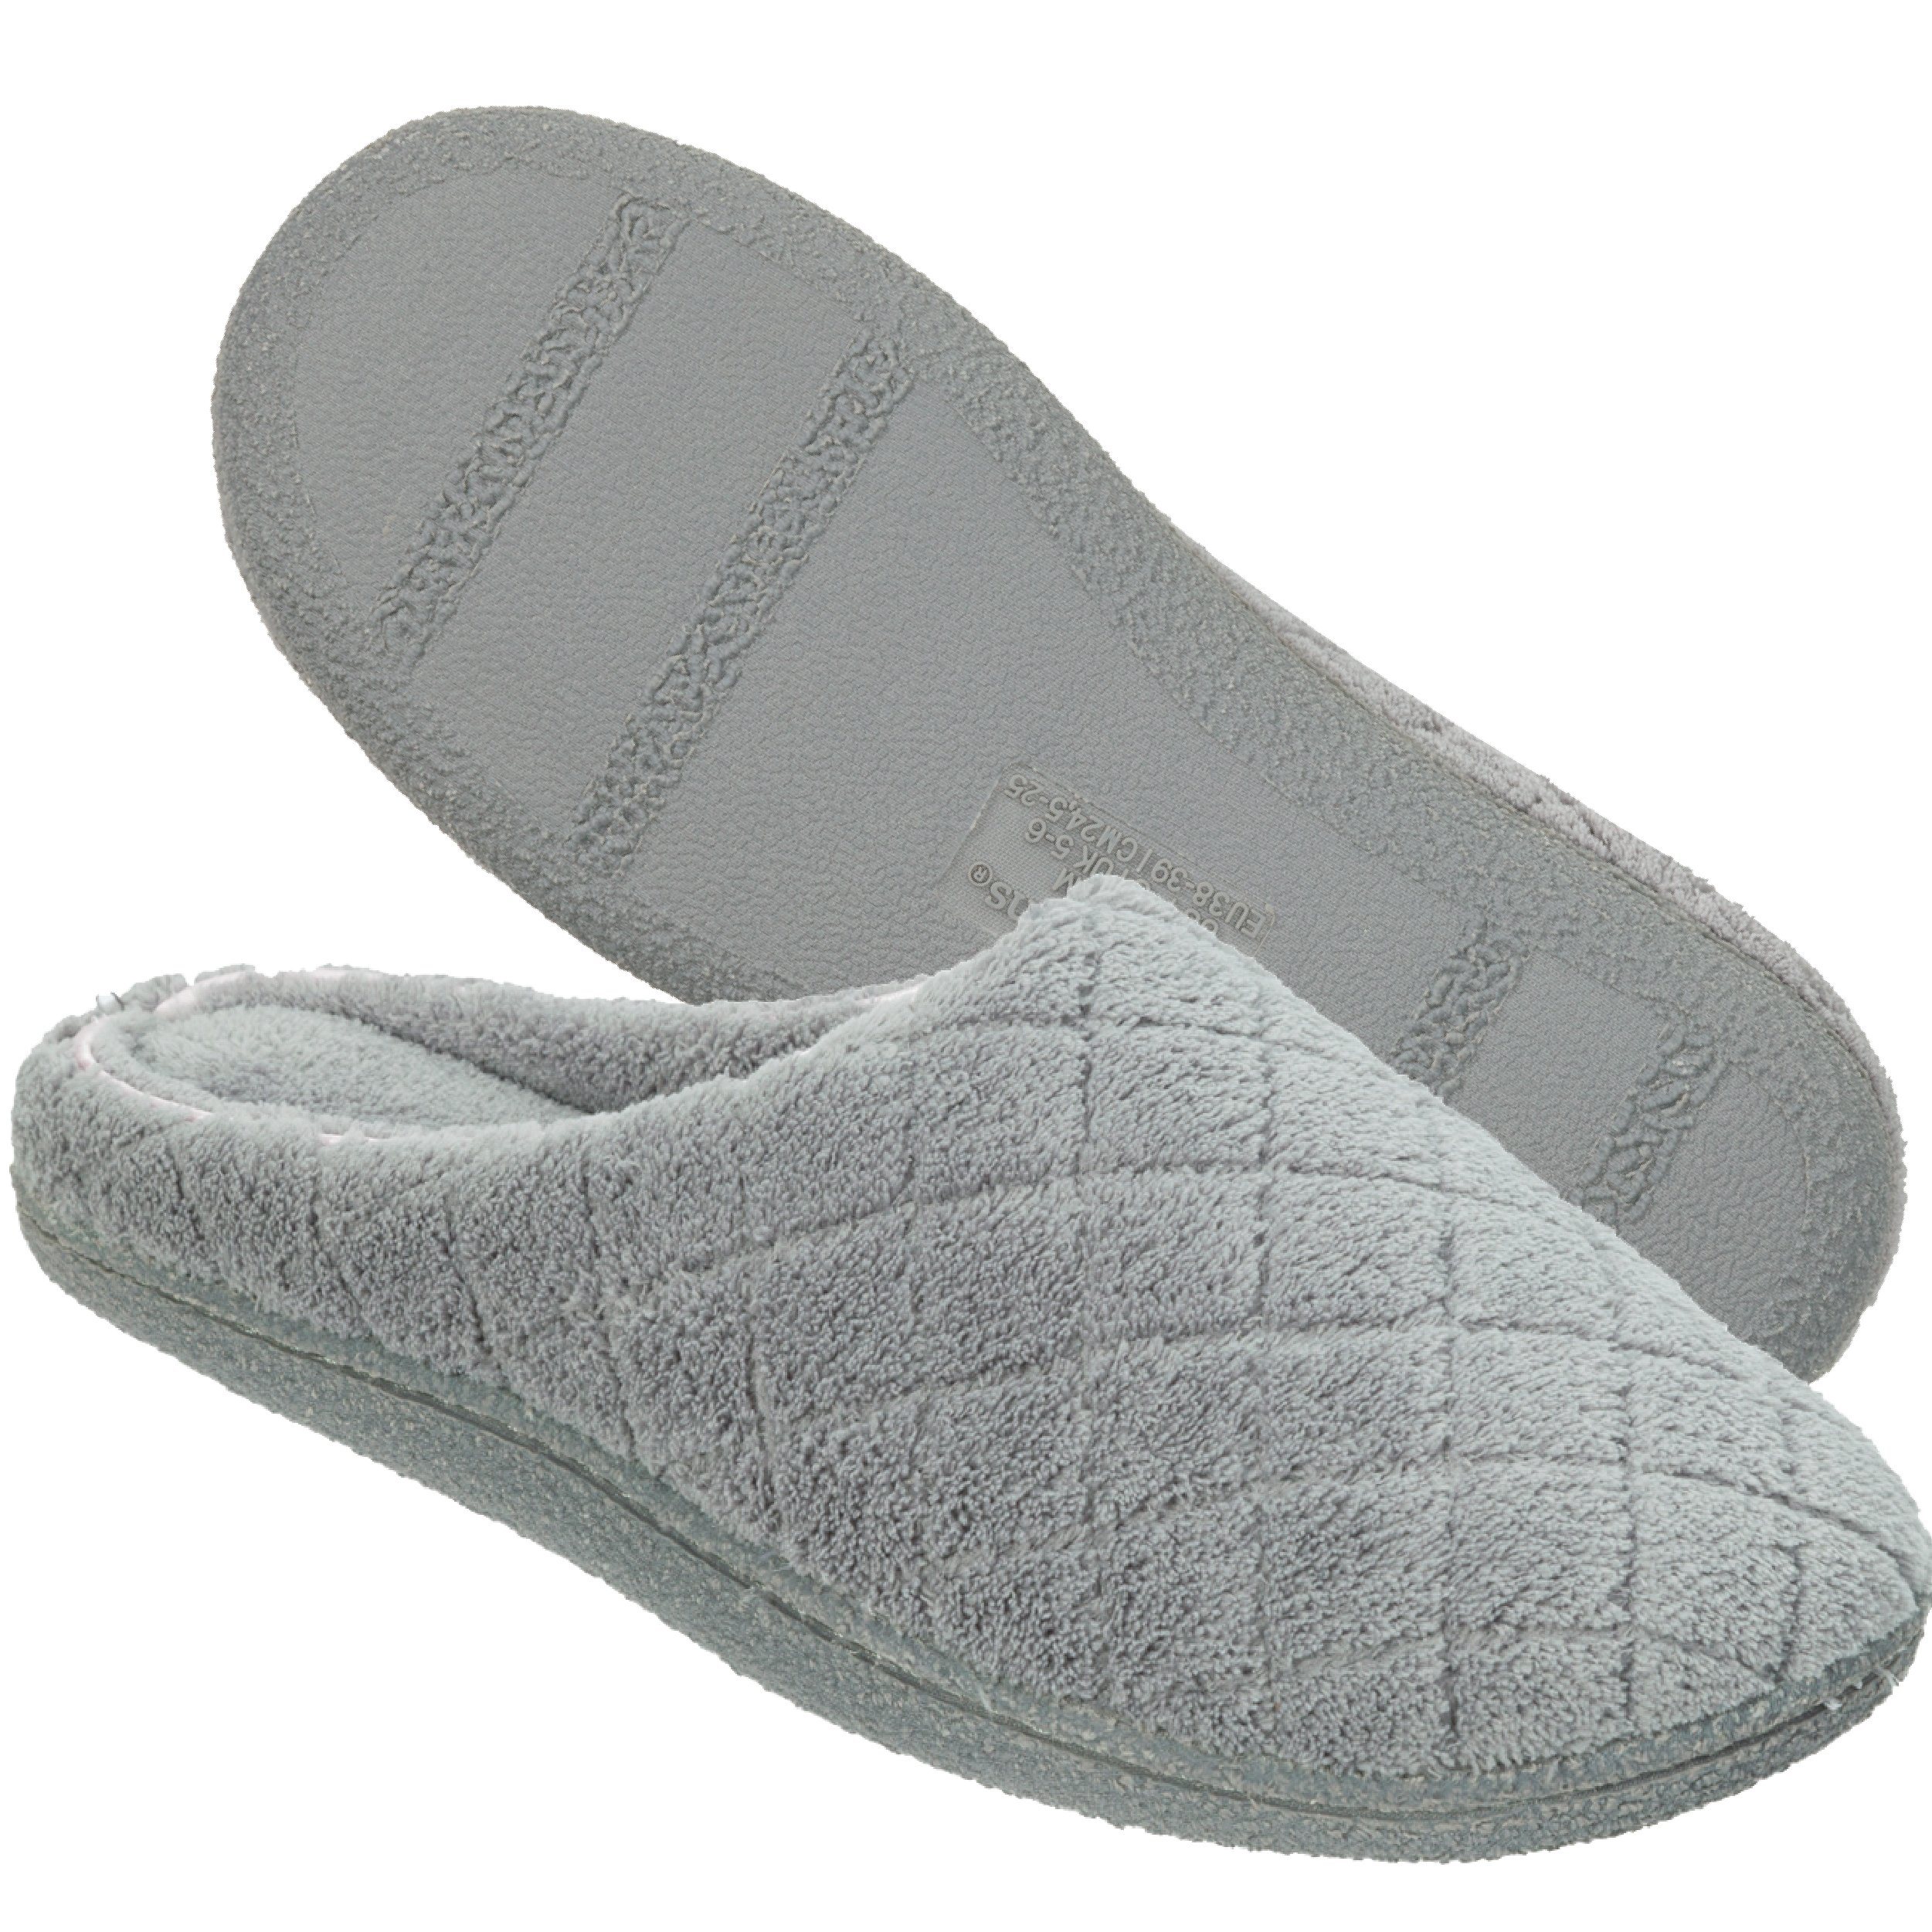 Dearfoams Women's Quilted Terry Clog Mule Slipper – Padded Terrycloth Slip-ONS with Skid-Resistant Rubber Outsole, Medium Grey, Medium/7-8 M US